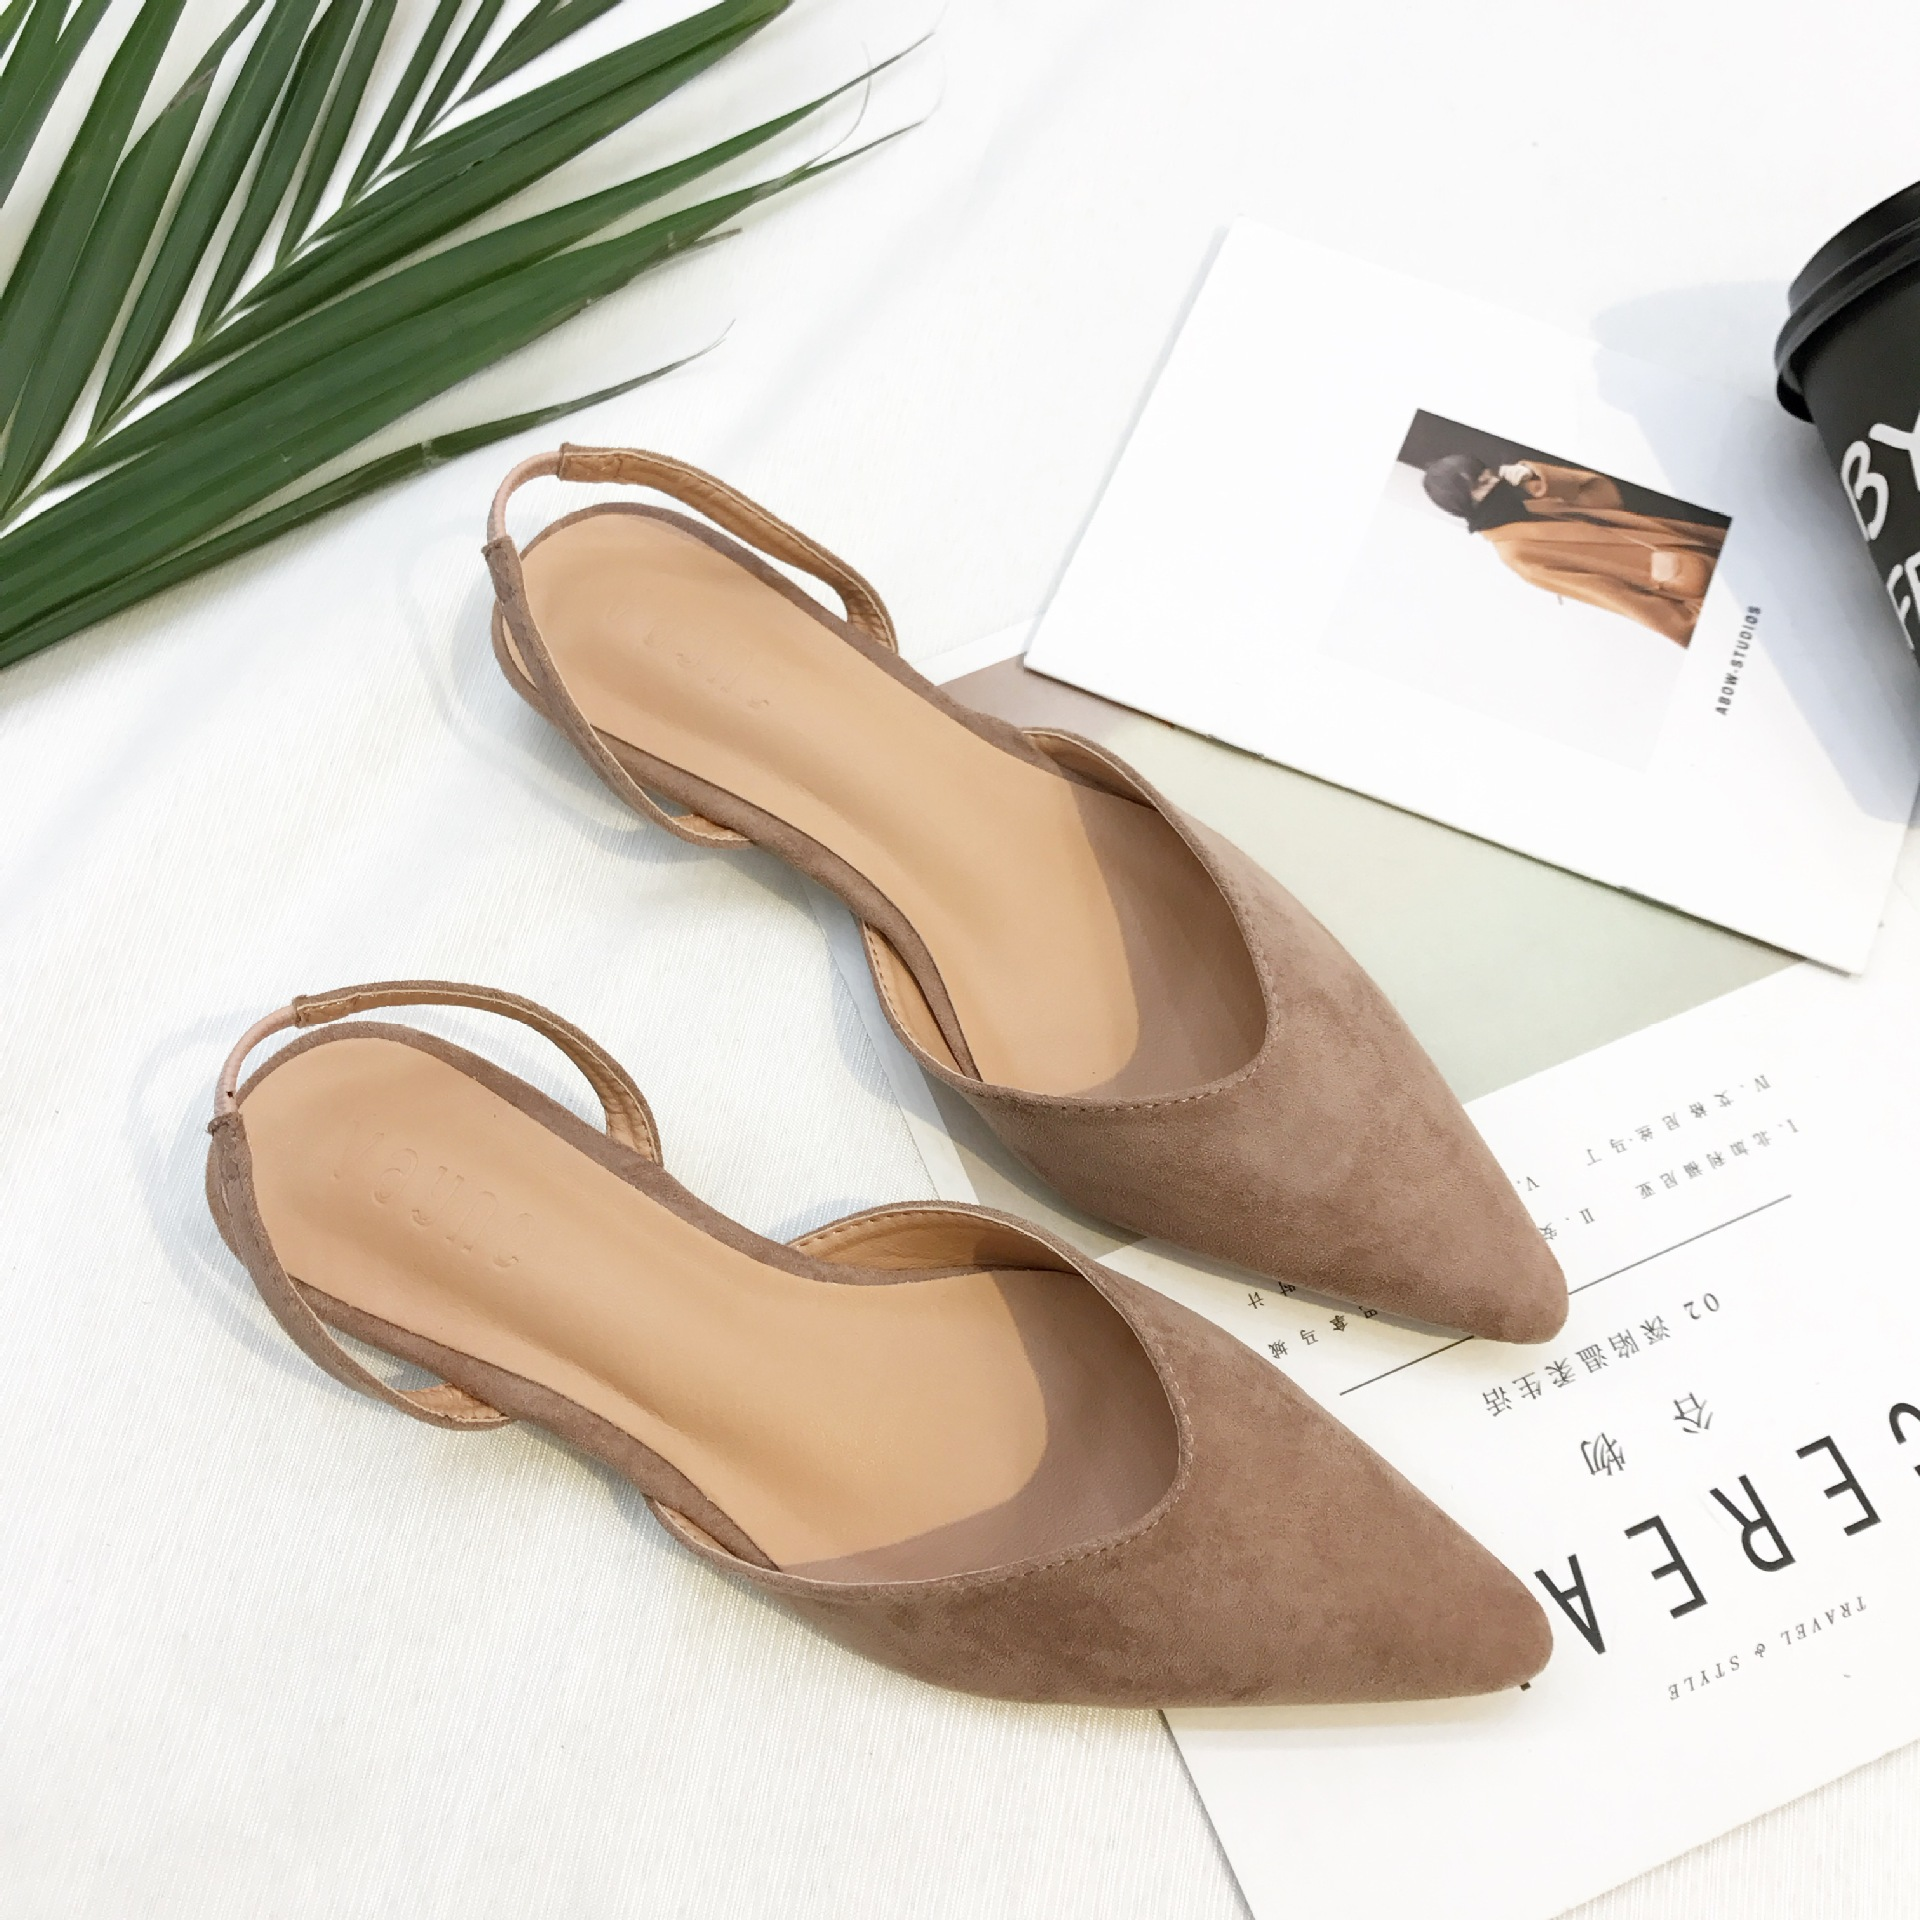 0808 suede hollow comfortable ladies flat shoes single shoes0808 suede hollow comfortable ladies flat shoes single shoes